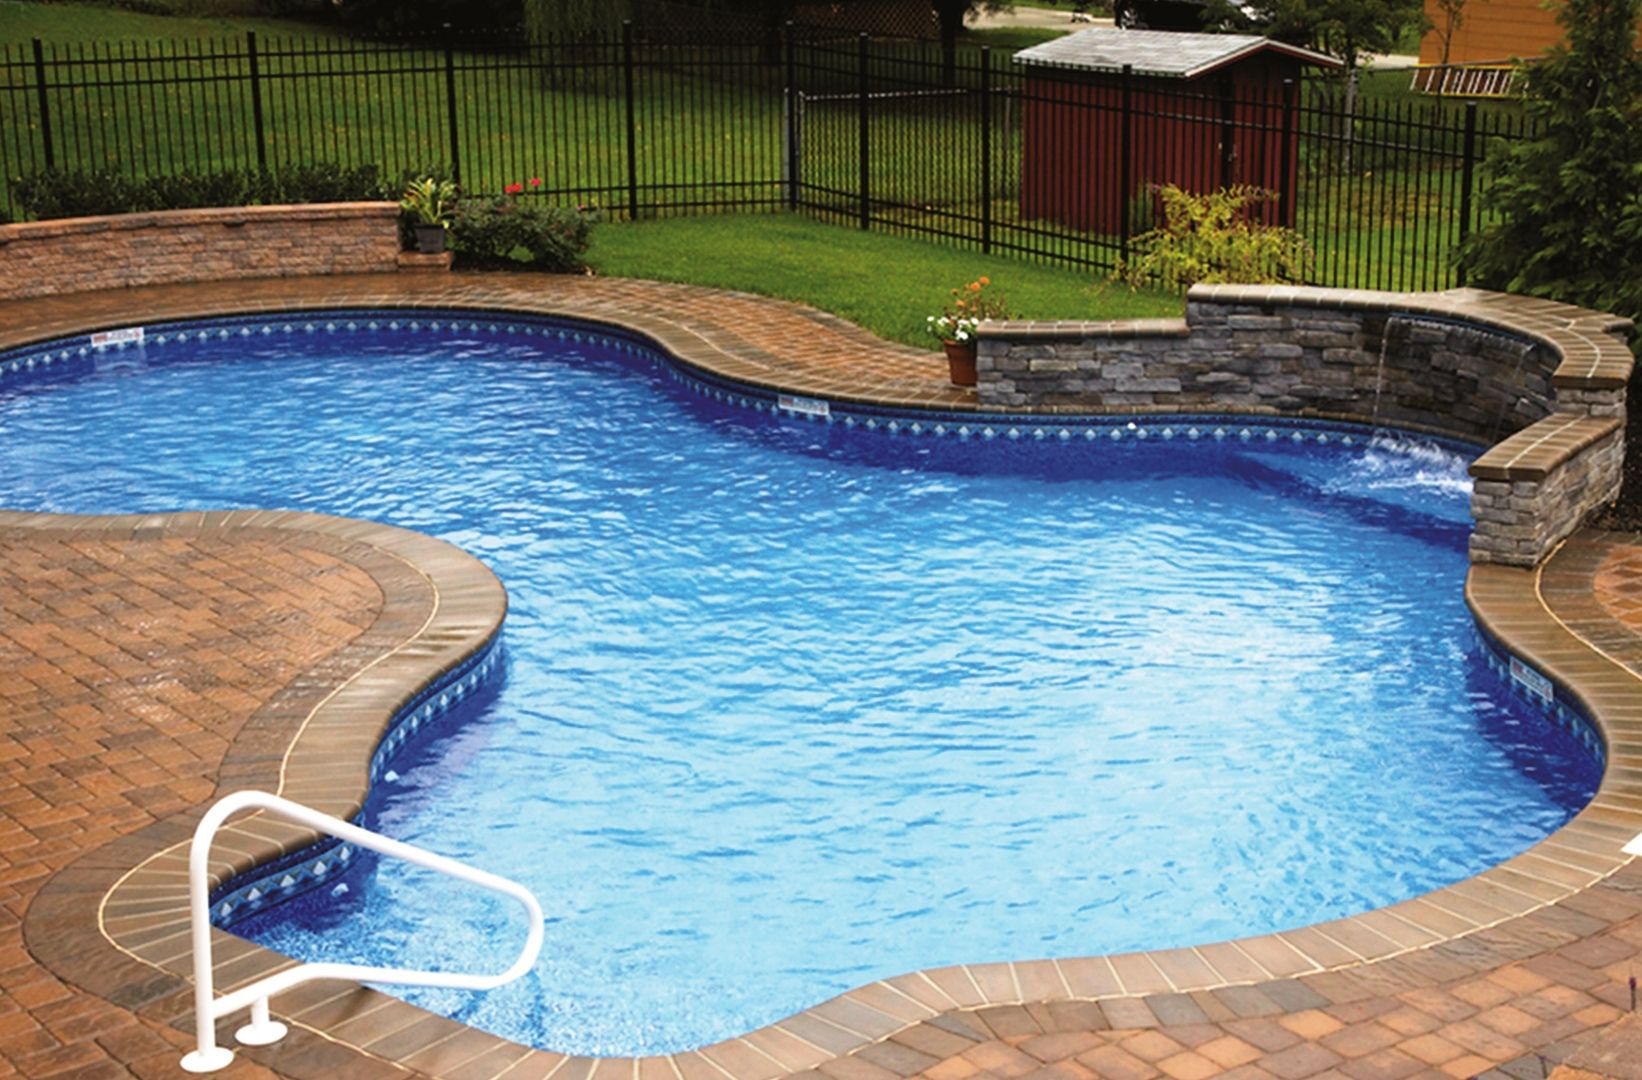 Back yard swimming pool ideas swimming pool design for Backyard inground pool ideas